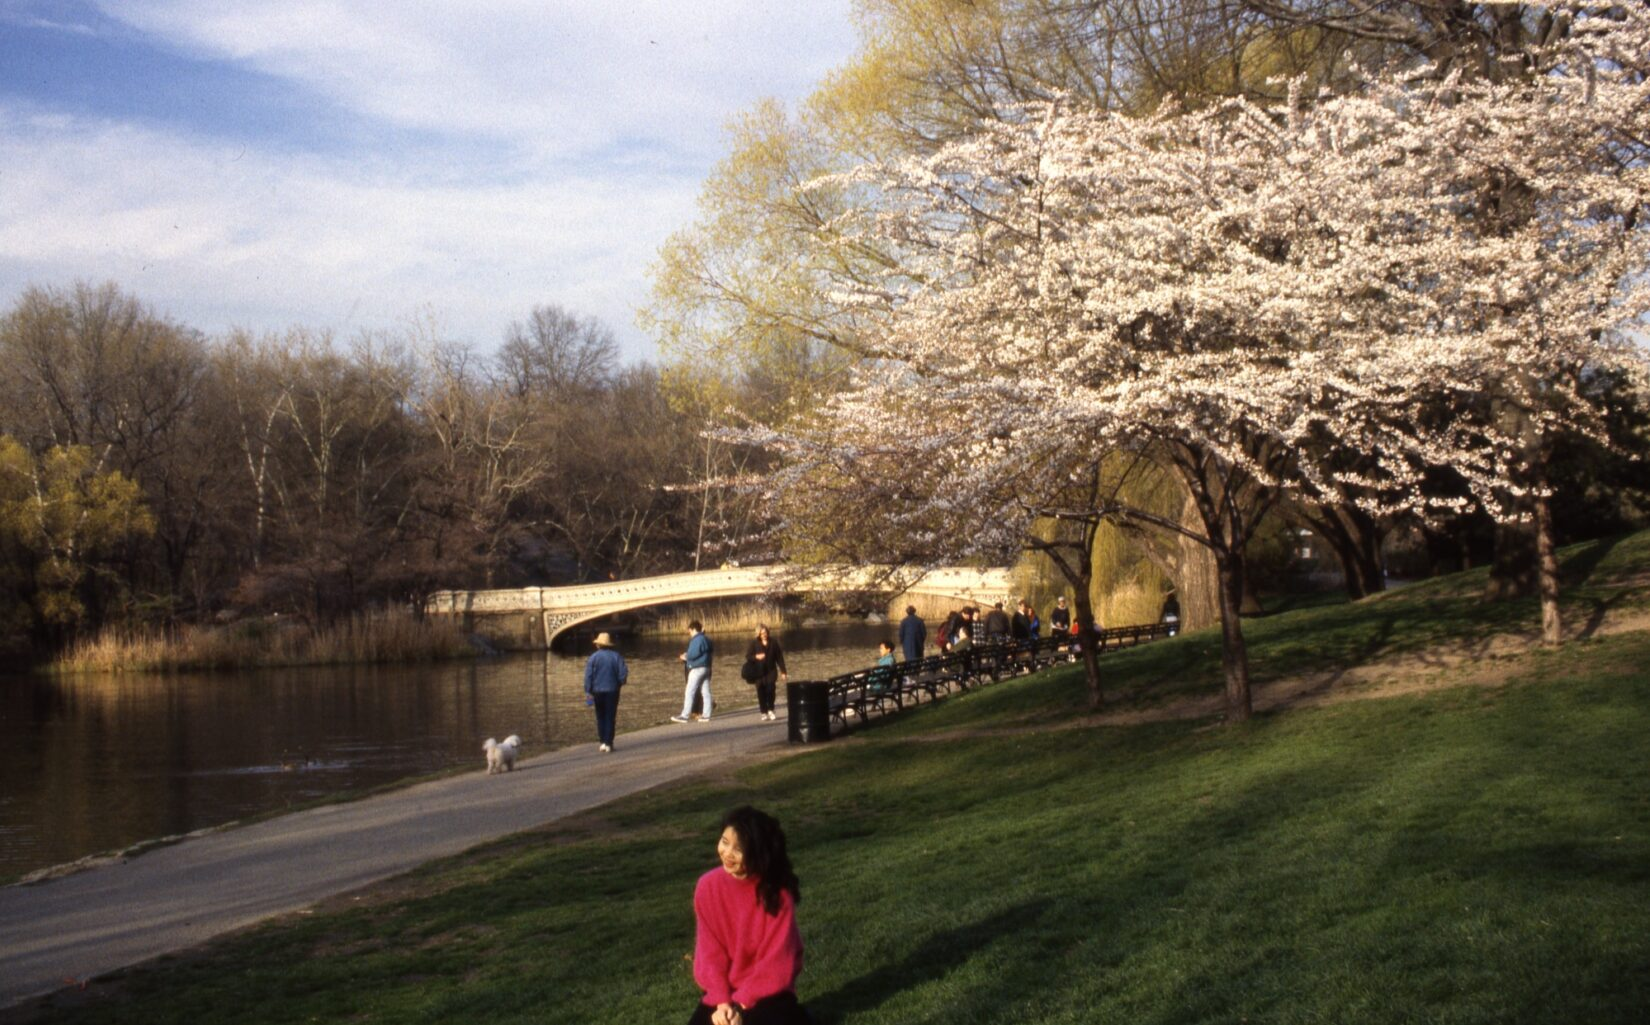 The shore of the Lake, with Bow Bridge in the background and a tree laden with cherry blossoms in the foreground.